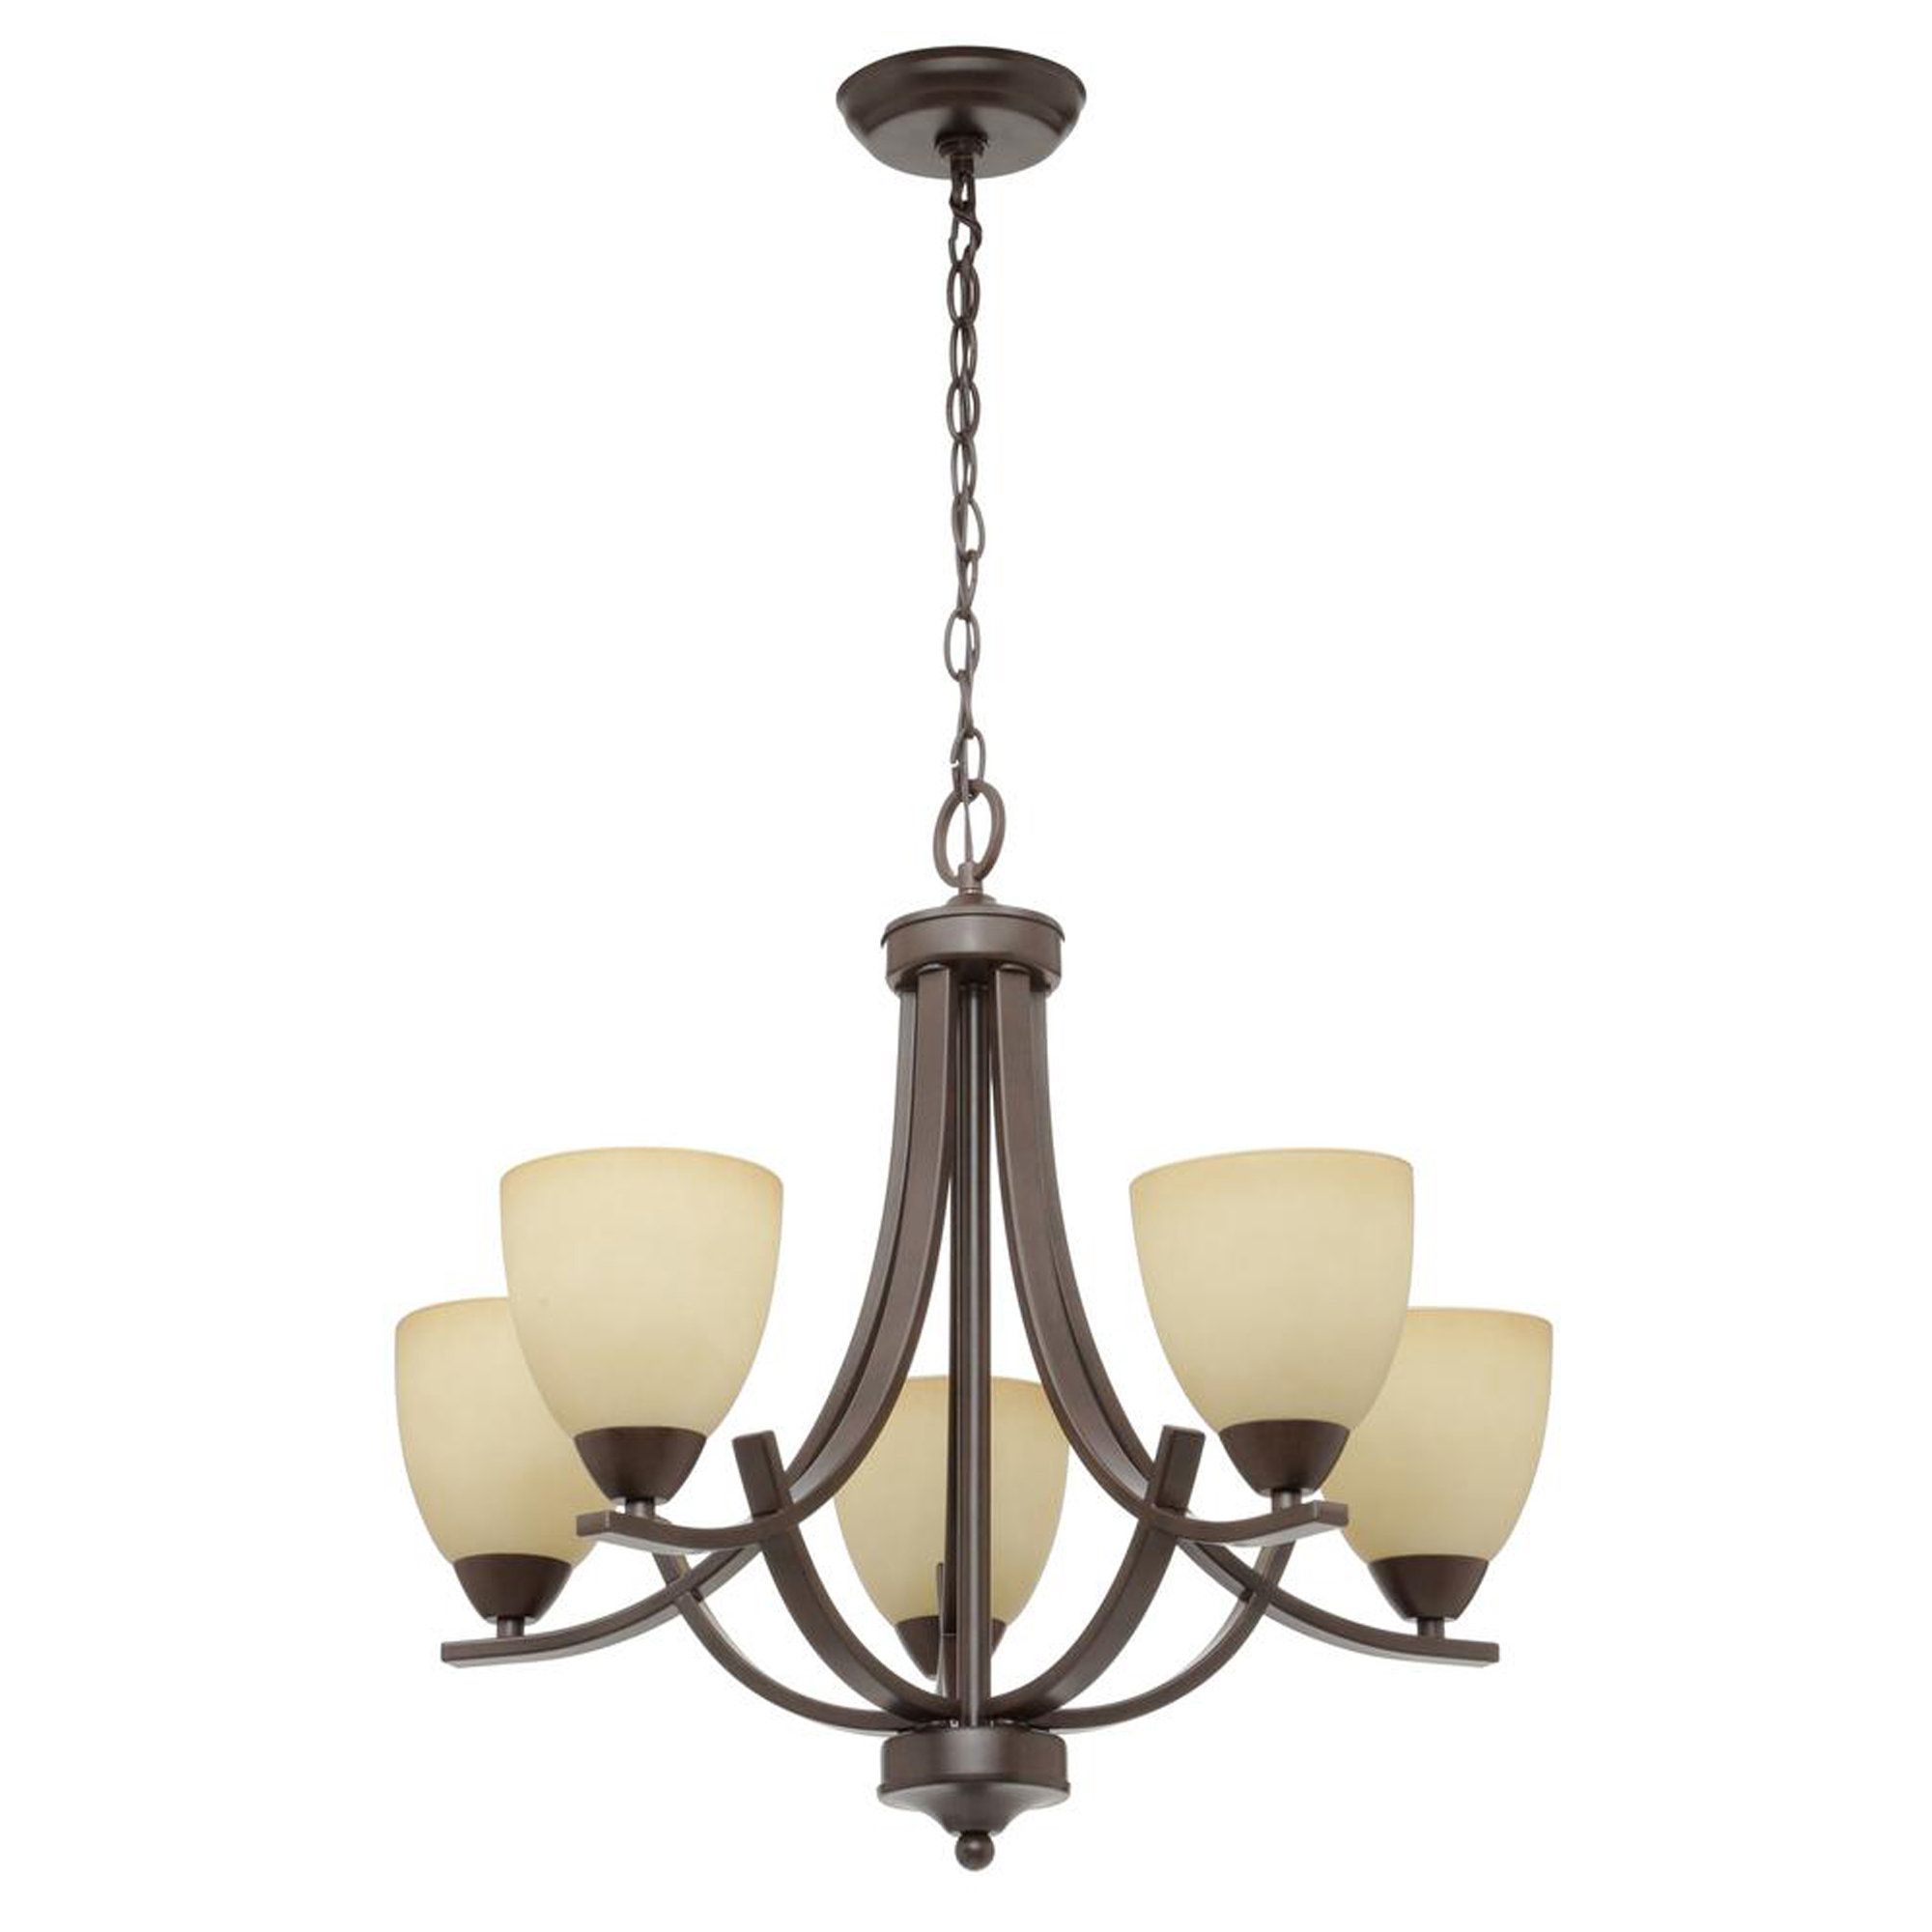 Fashionable Newent 5 Light Shaded Chandeliers Inside Crofoot 5 Light Shaded Chandelier (View 7 of 25)